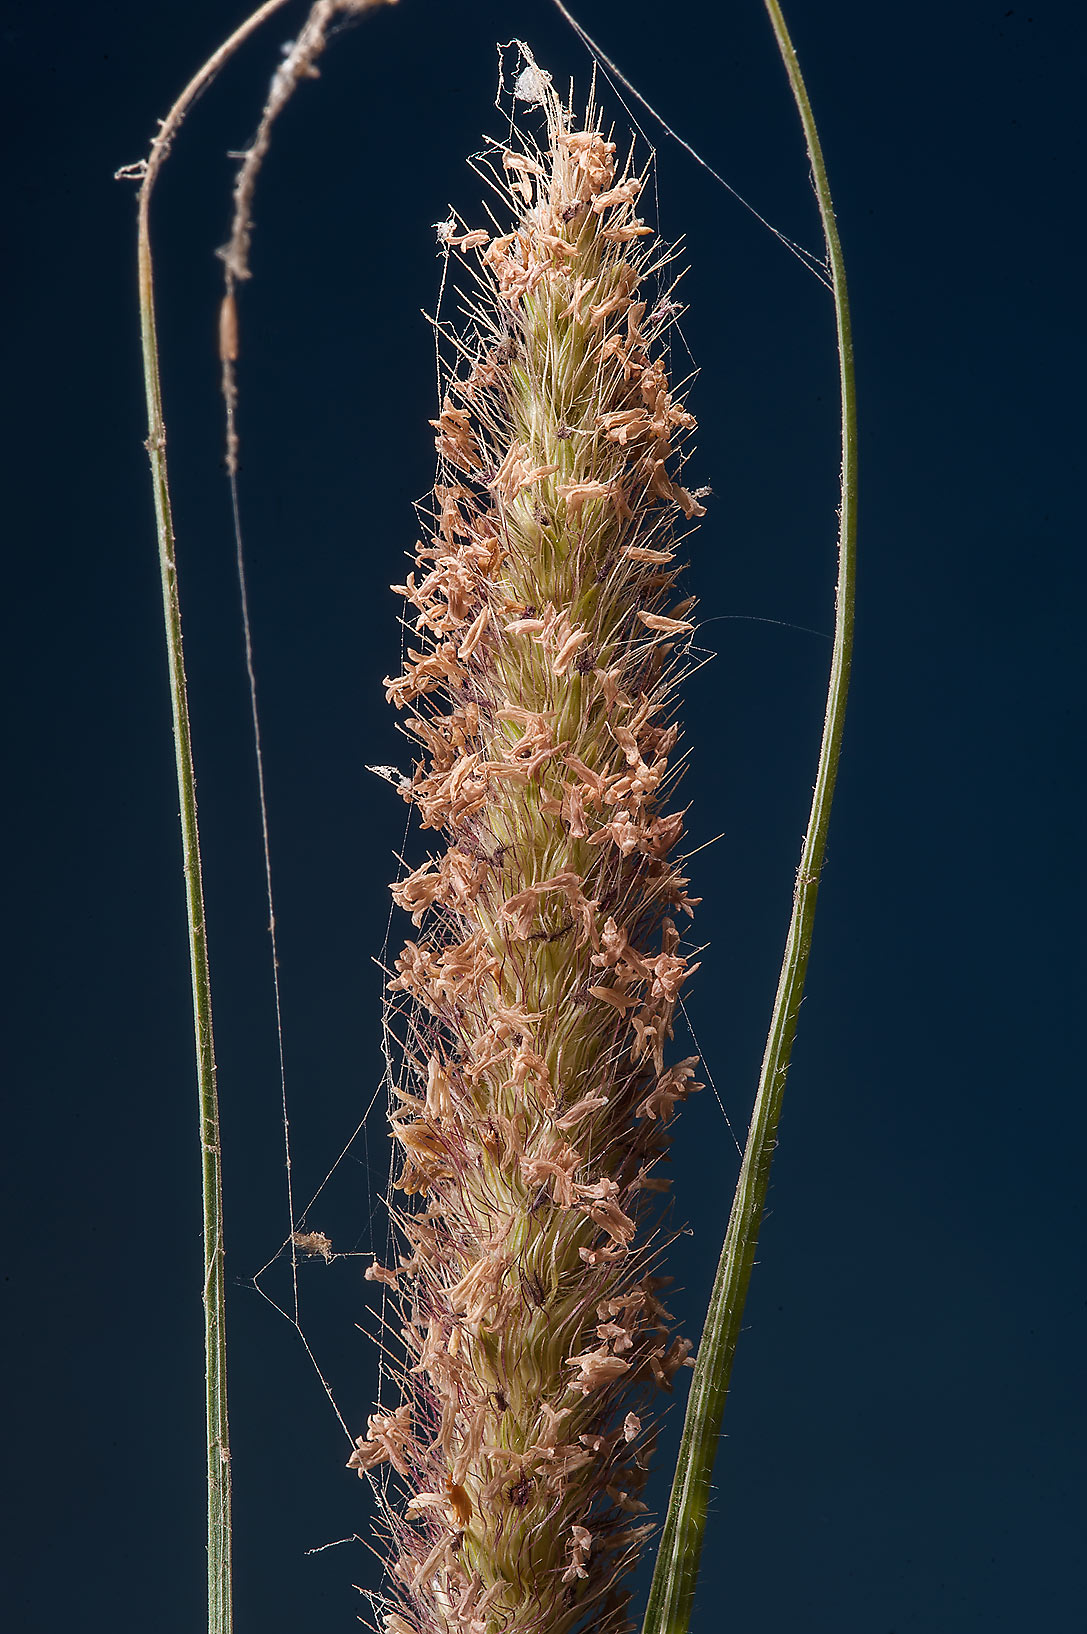 Spikelet of some grass on Green Circles (center...Irkaya) Farms. South-western Qatar